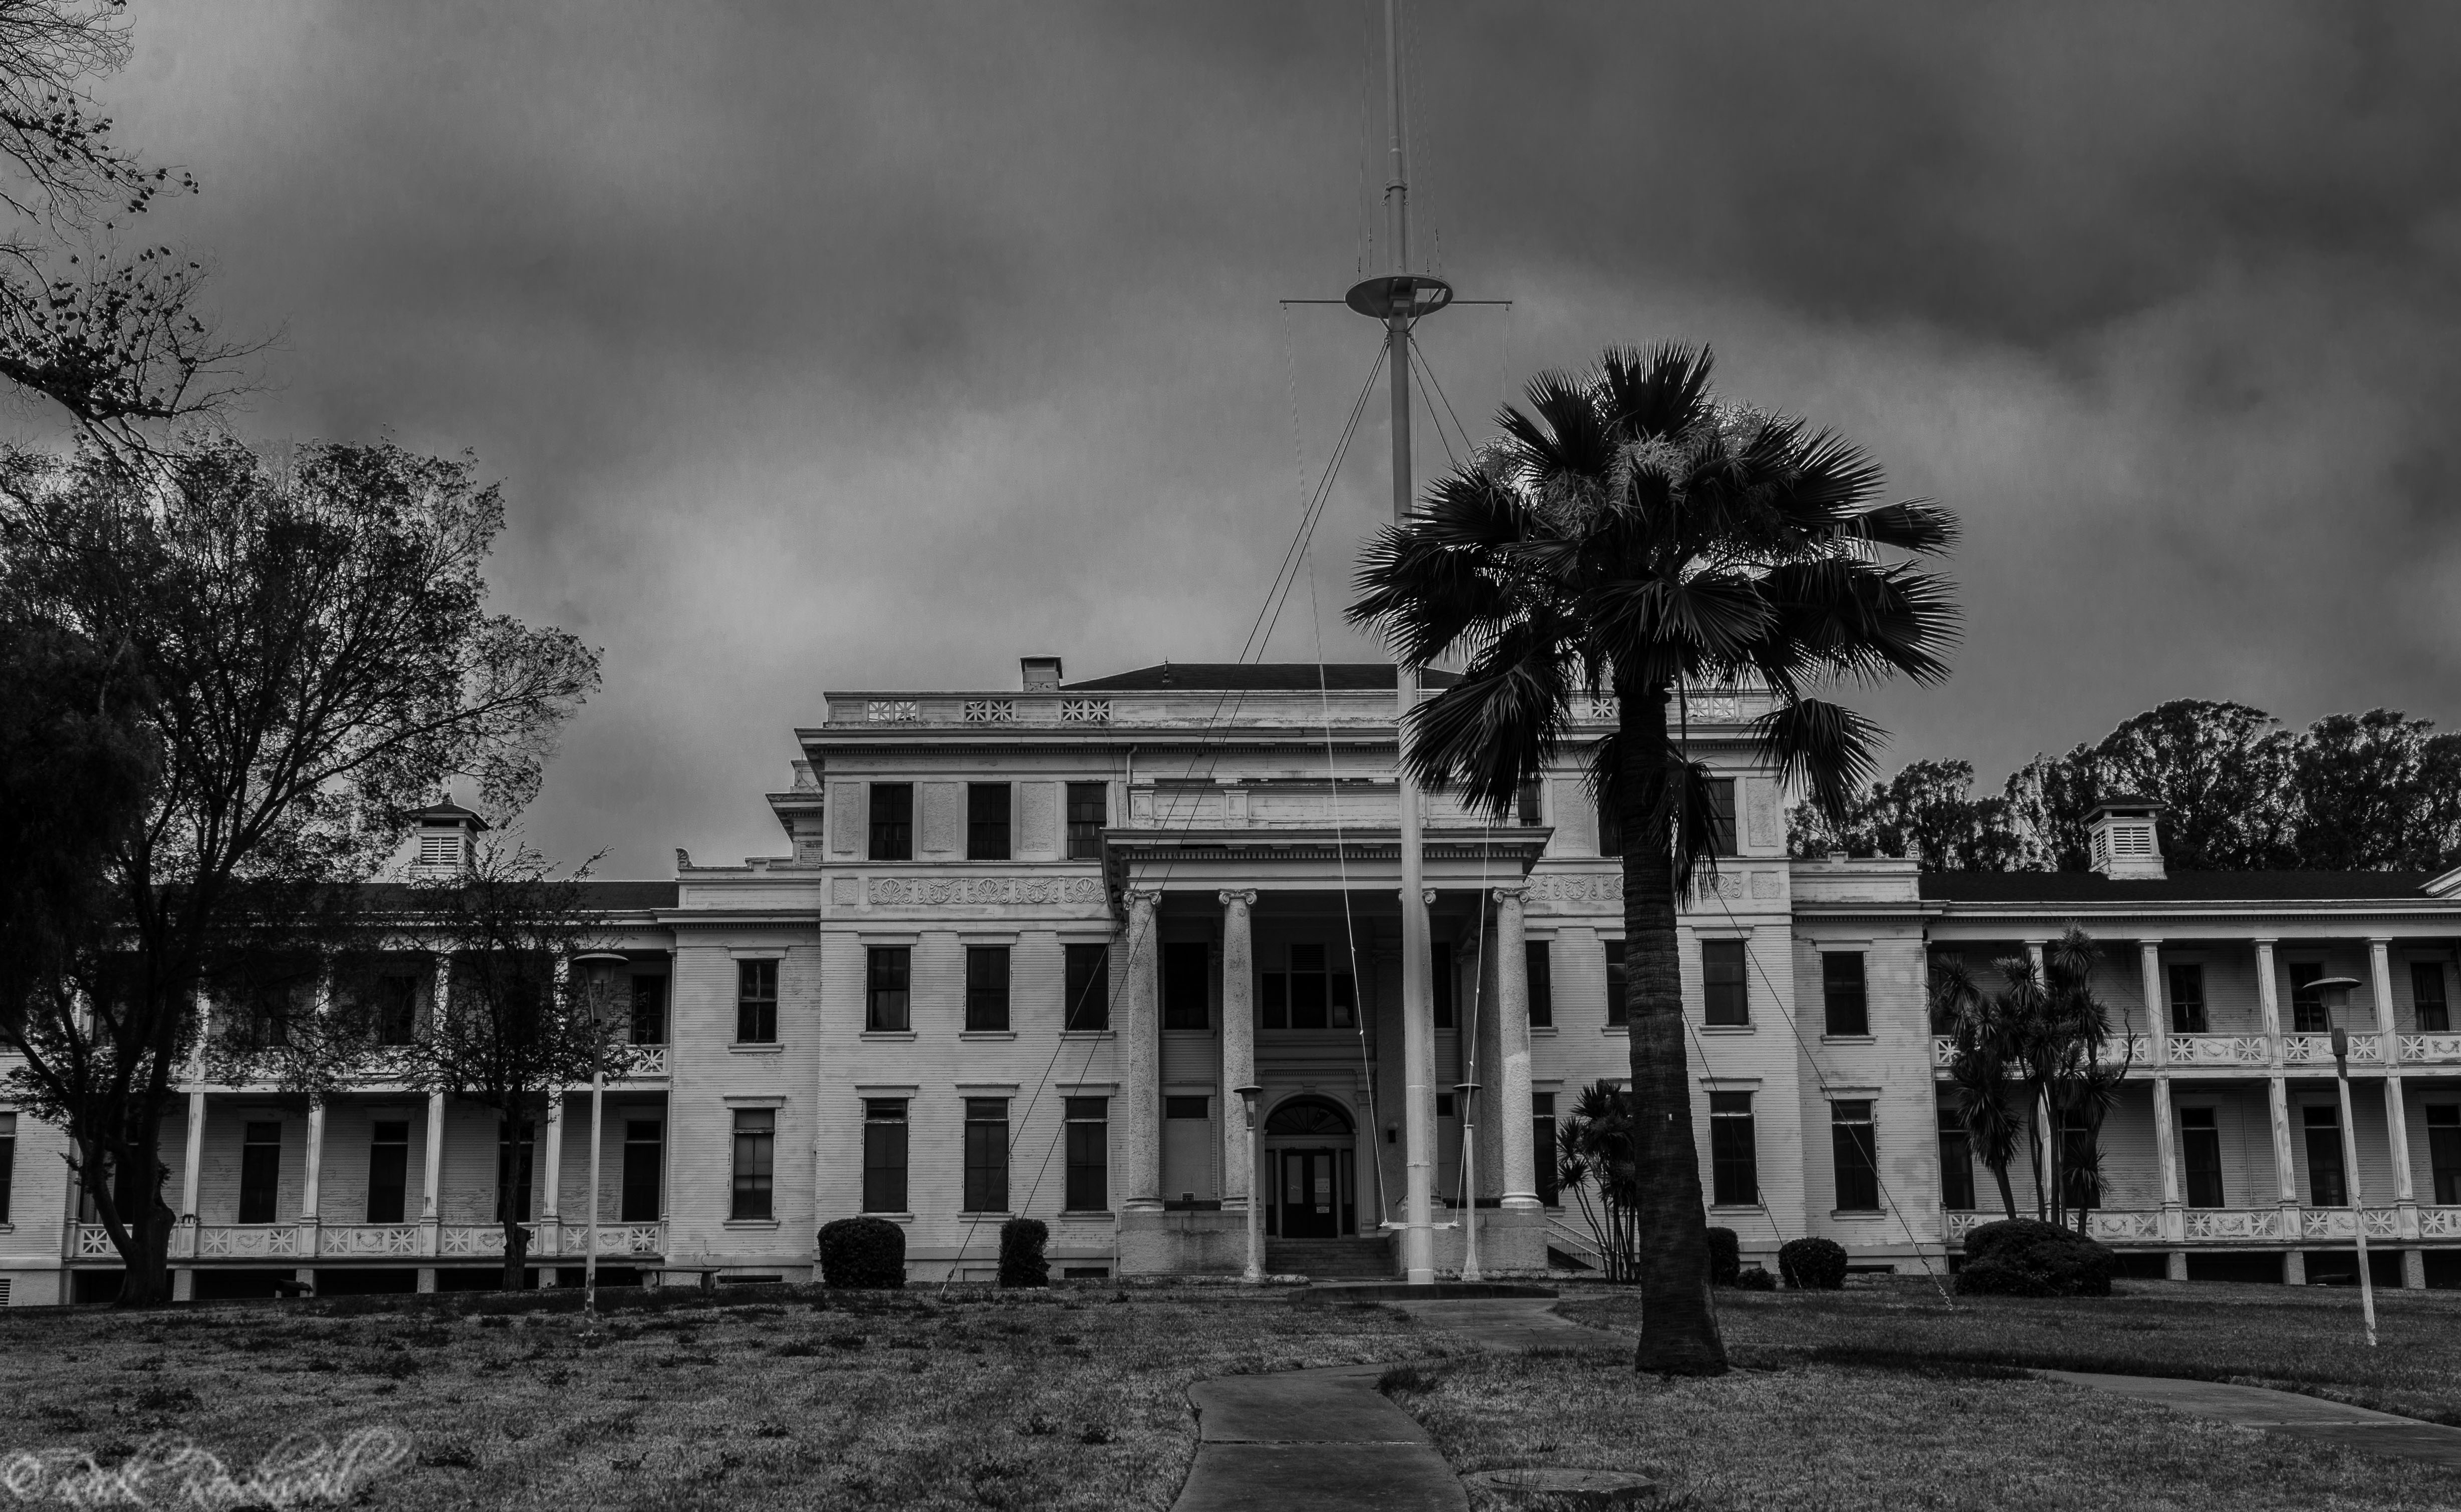 mare island hospital front 4 (1 of 1)